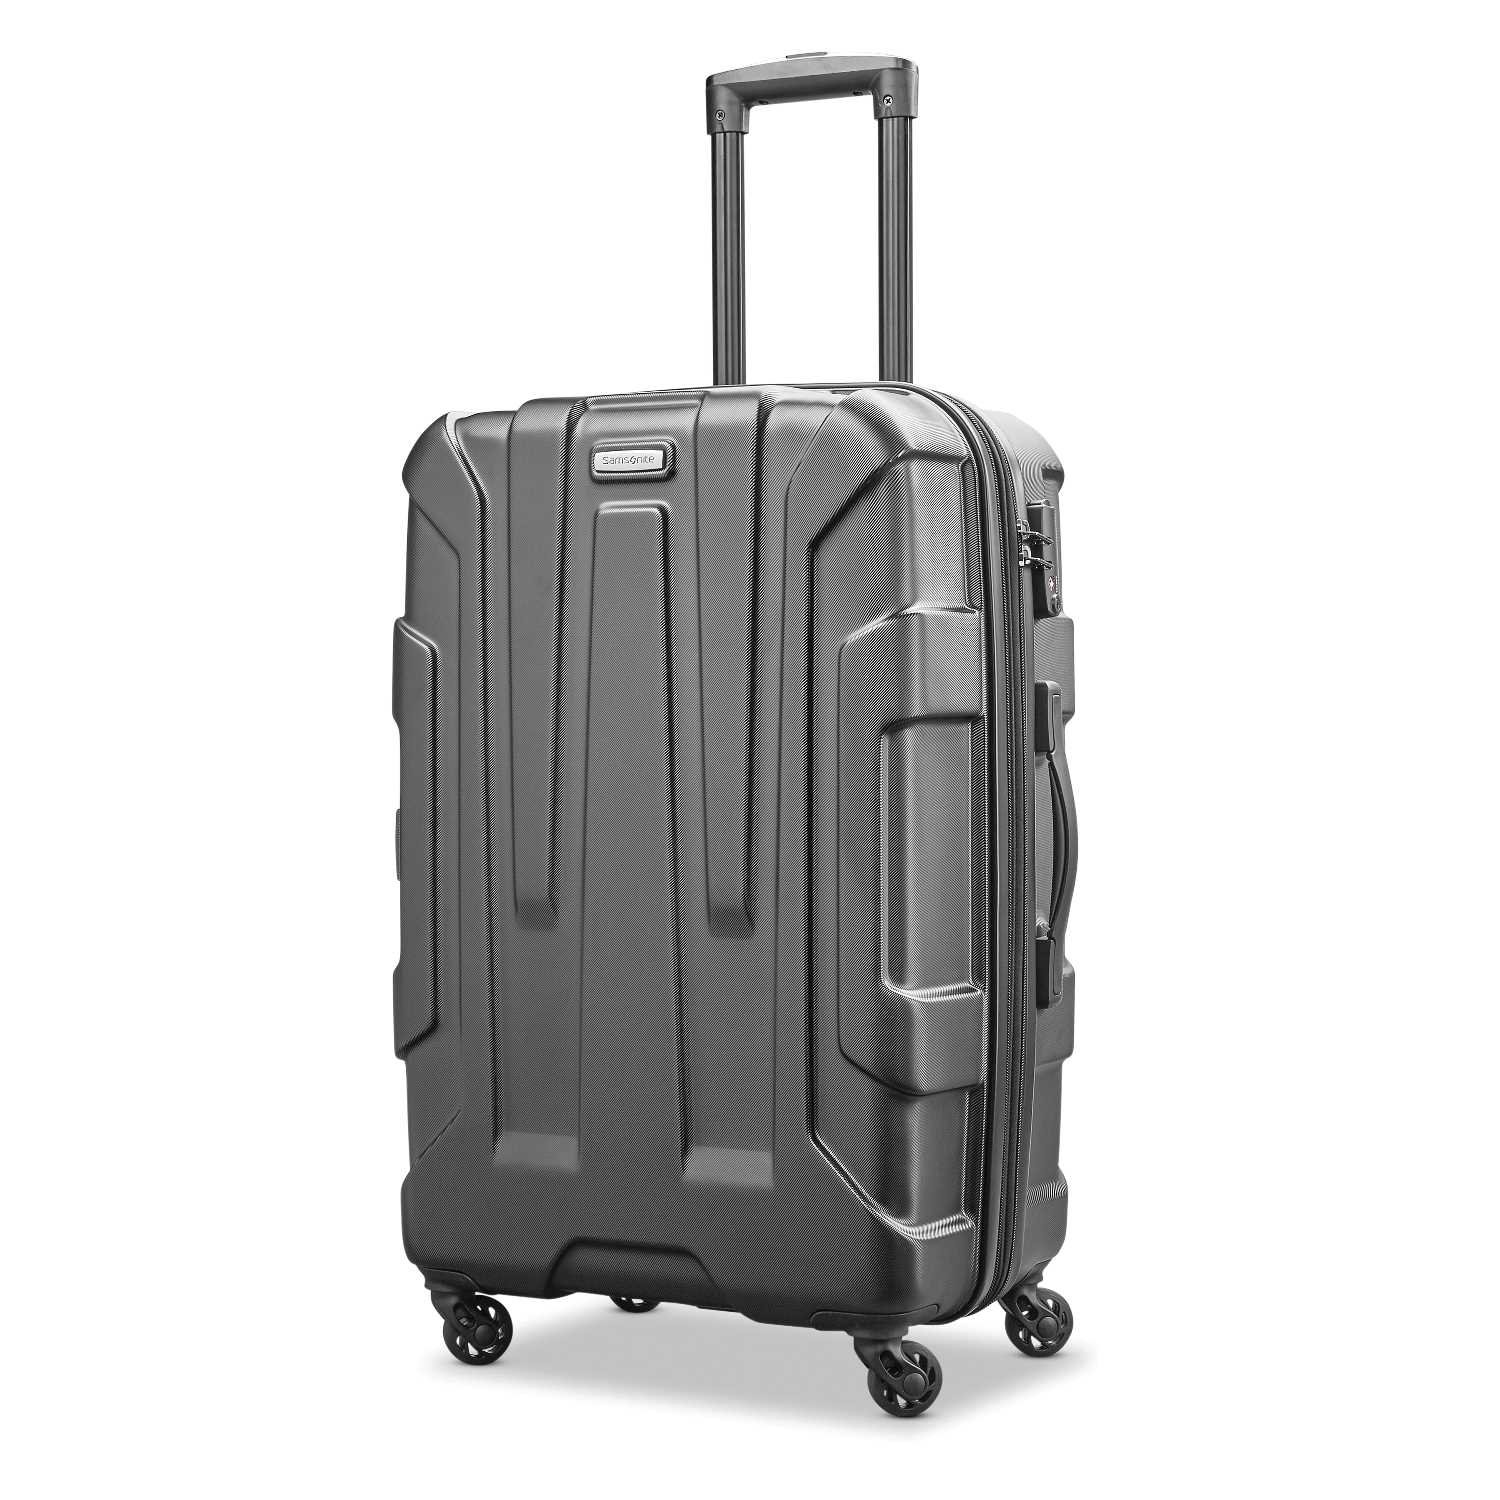 Samsonite Centric Expandable Hardside Checked Luggage with Spinner Wheels, 24 Inch, Black